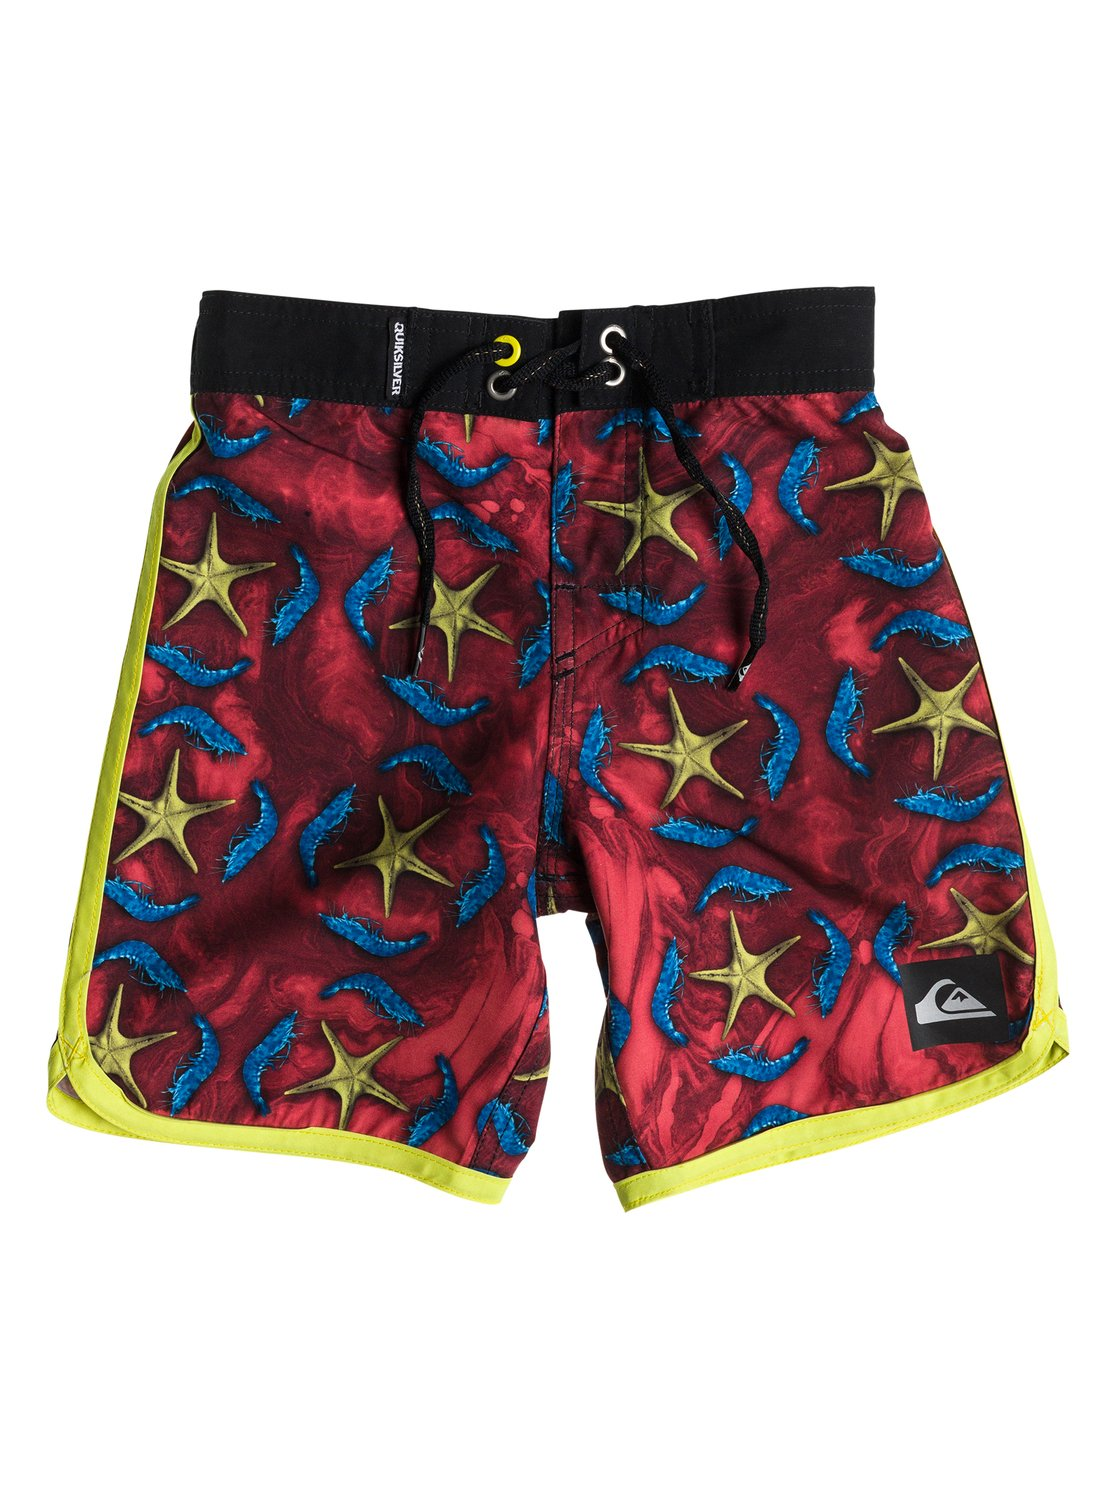 Star Gazer Boy 13 - Quiksilver��������� ��� ��������� �� Quiksilver � ������� �� ��������� ����� 2015. ��������������: ����� Supersuede �� ��������������� ����� � ����������������� ��������������, ����������� ����, ����� 33 �� �� �������� ���.<br>